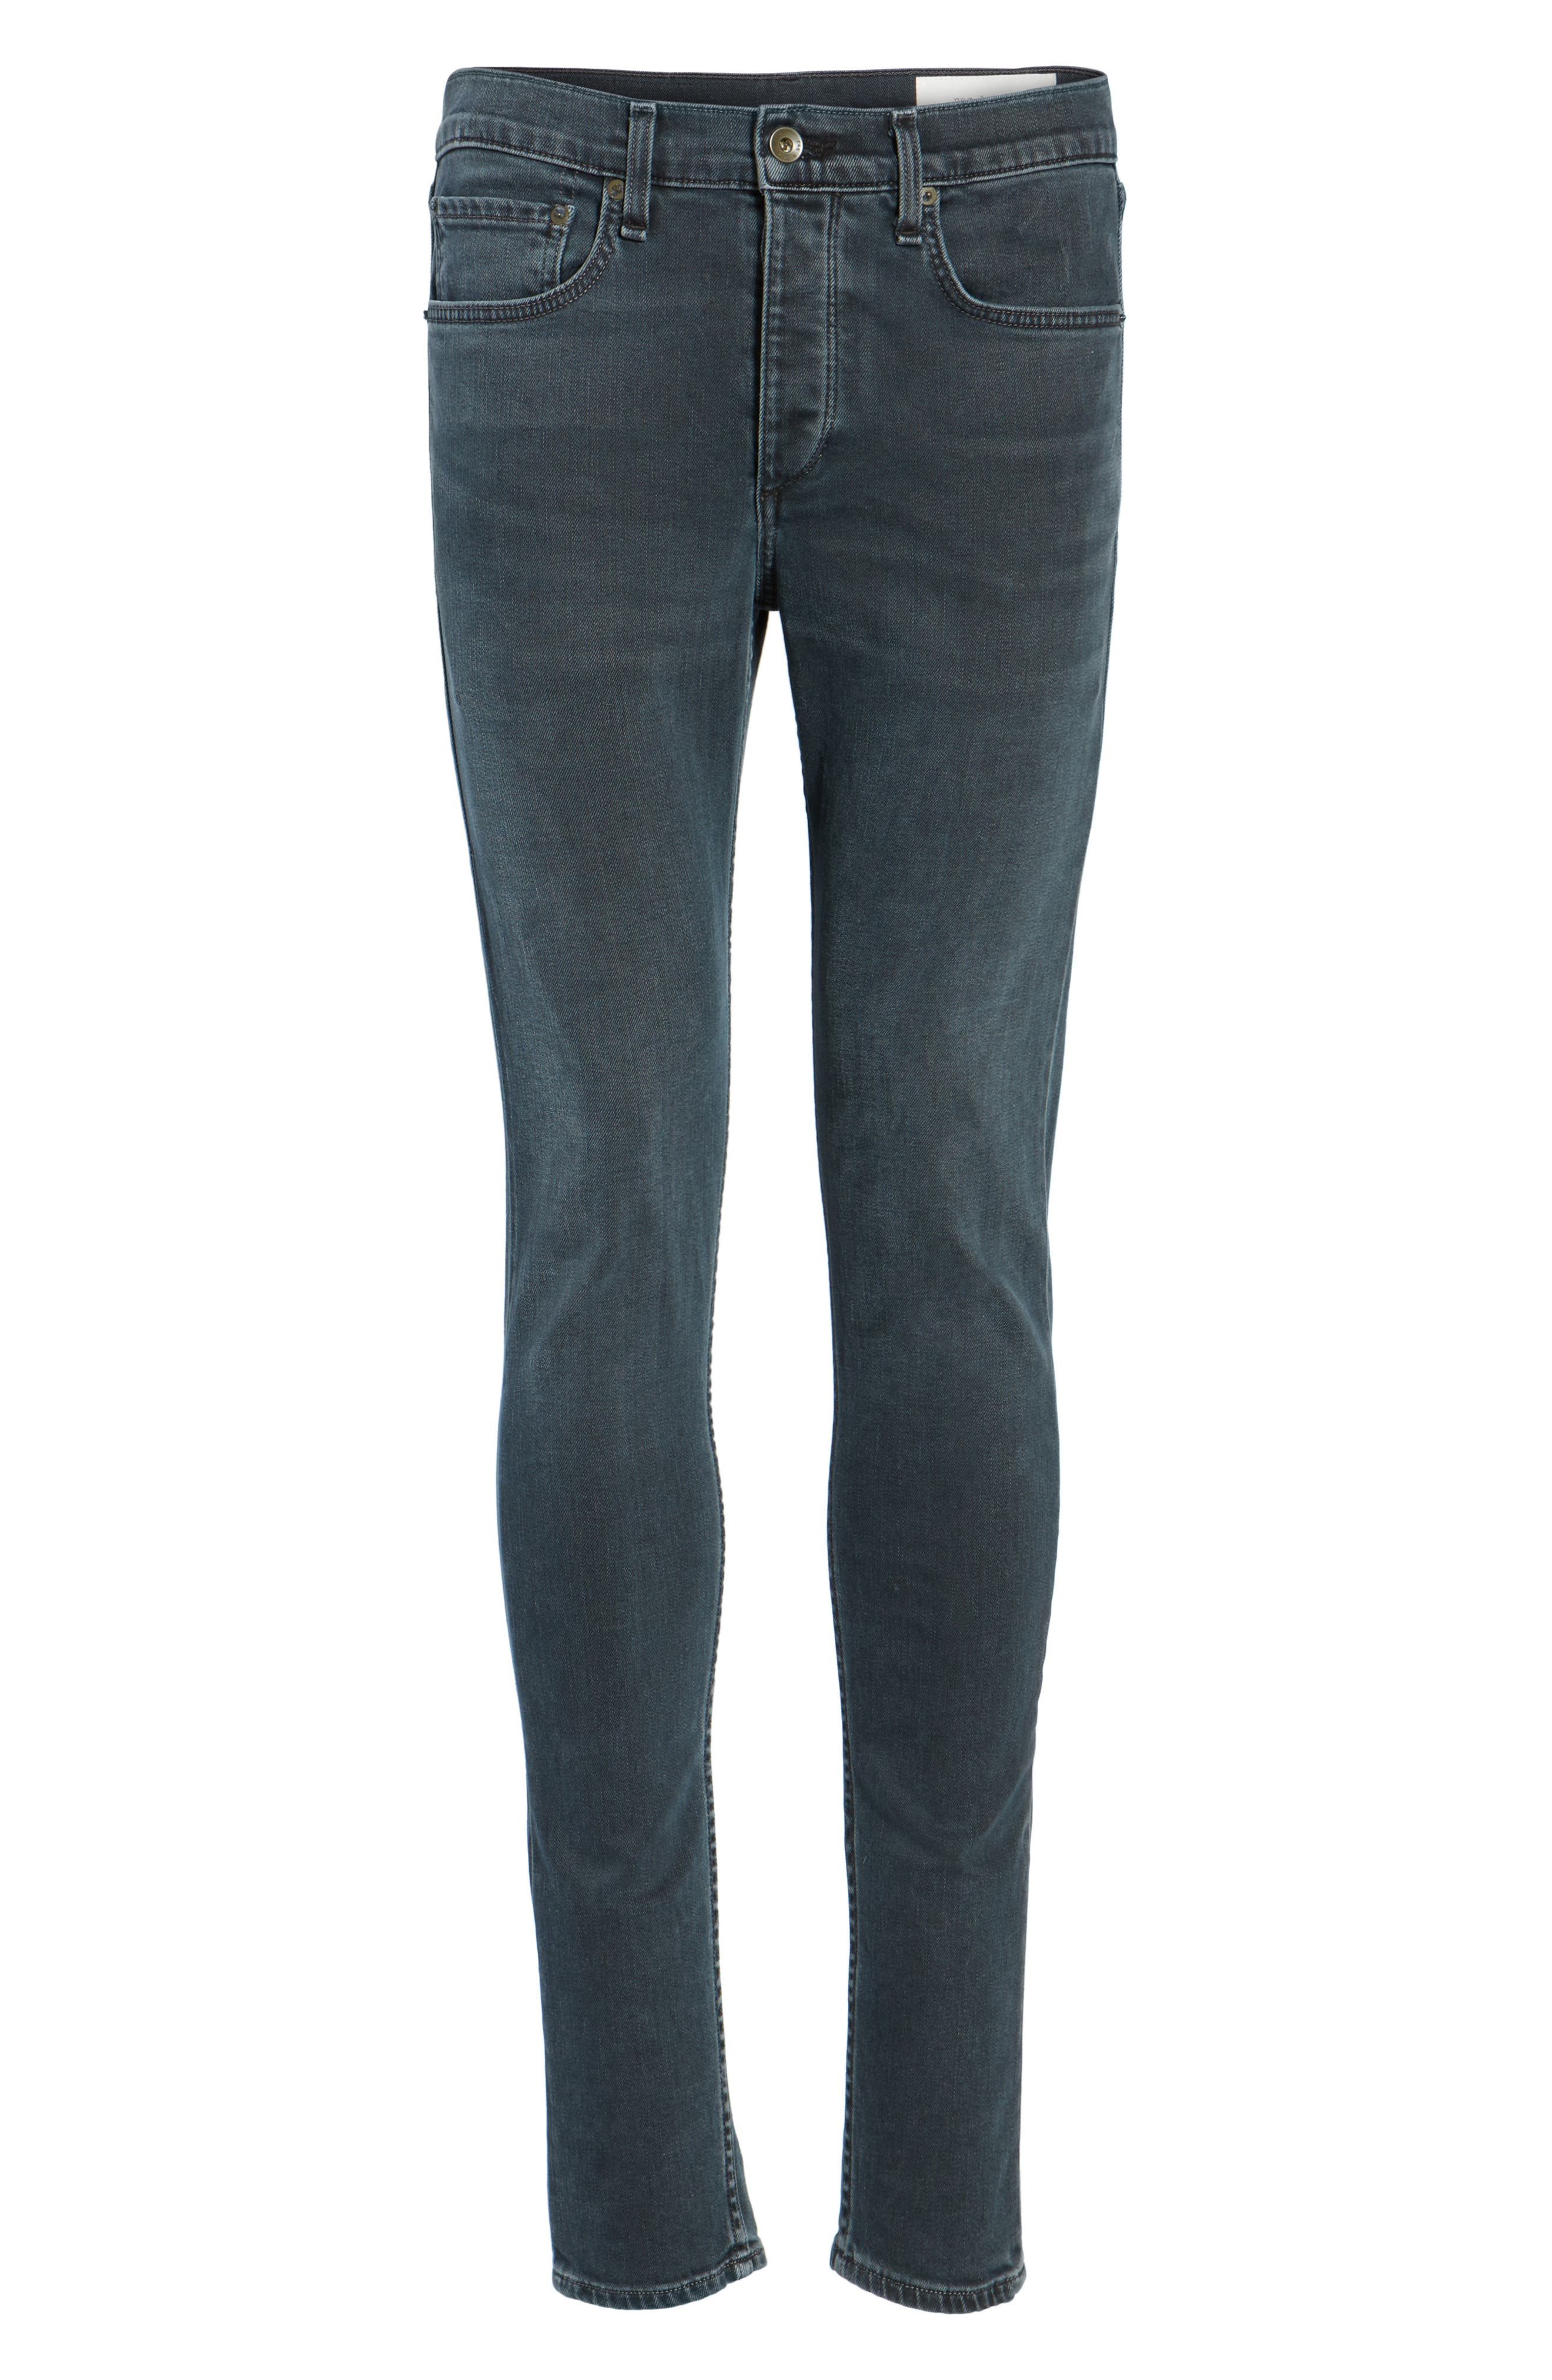 Fit 1 Skinny Fit Jeans,                             Alternate thumbnail 6, color,                             Minna